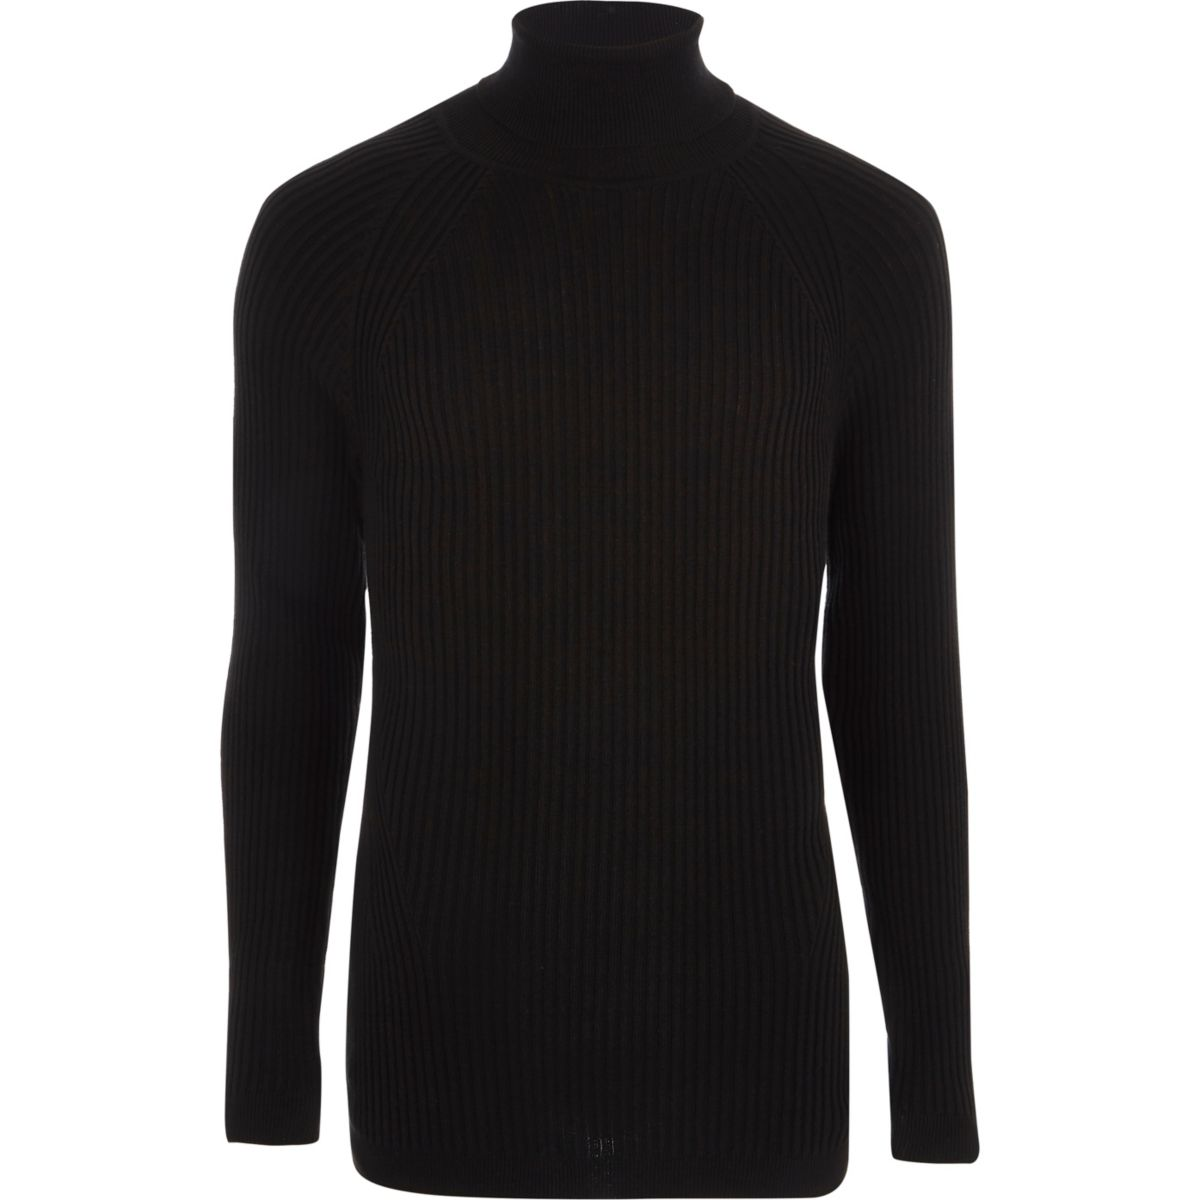 Product Features complete the look of this comfy-casual sweater in cotton-blend fabric.